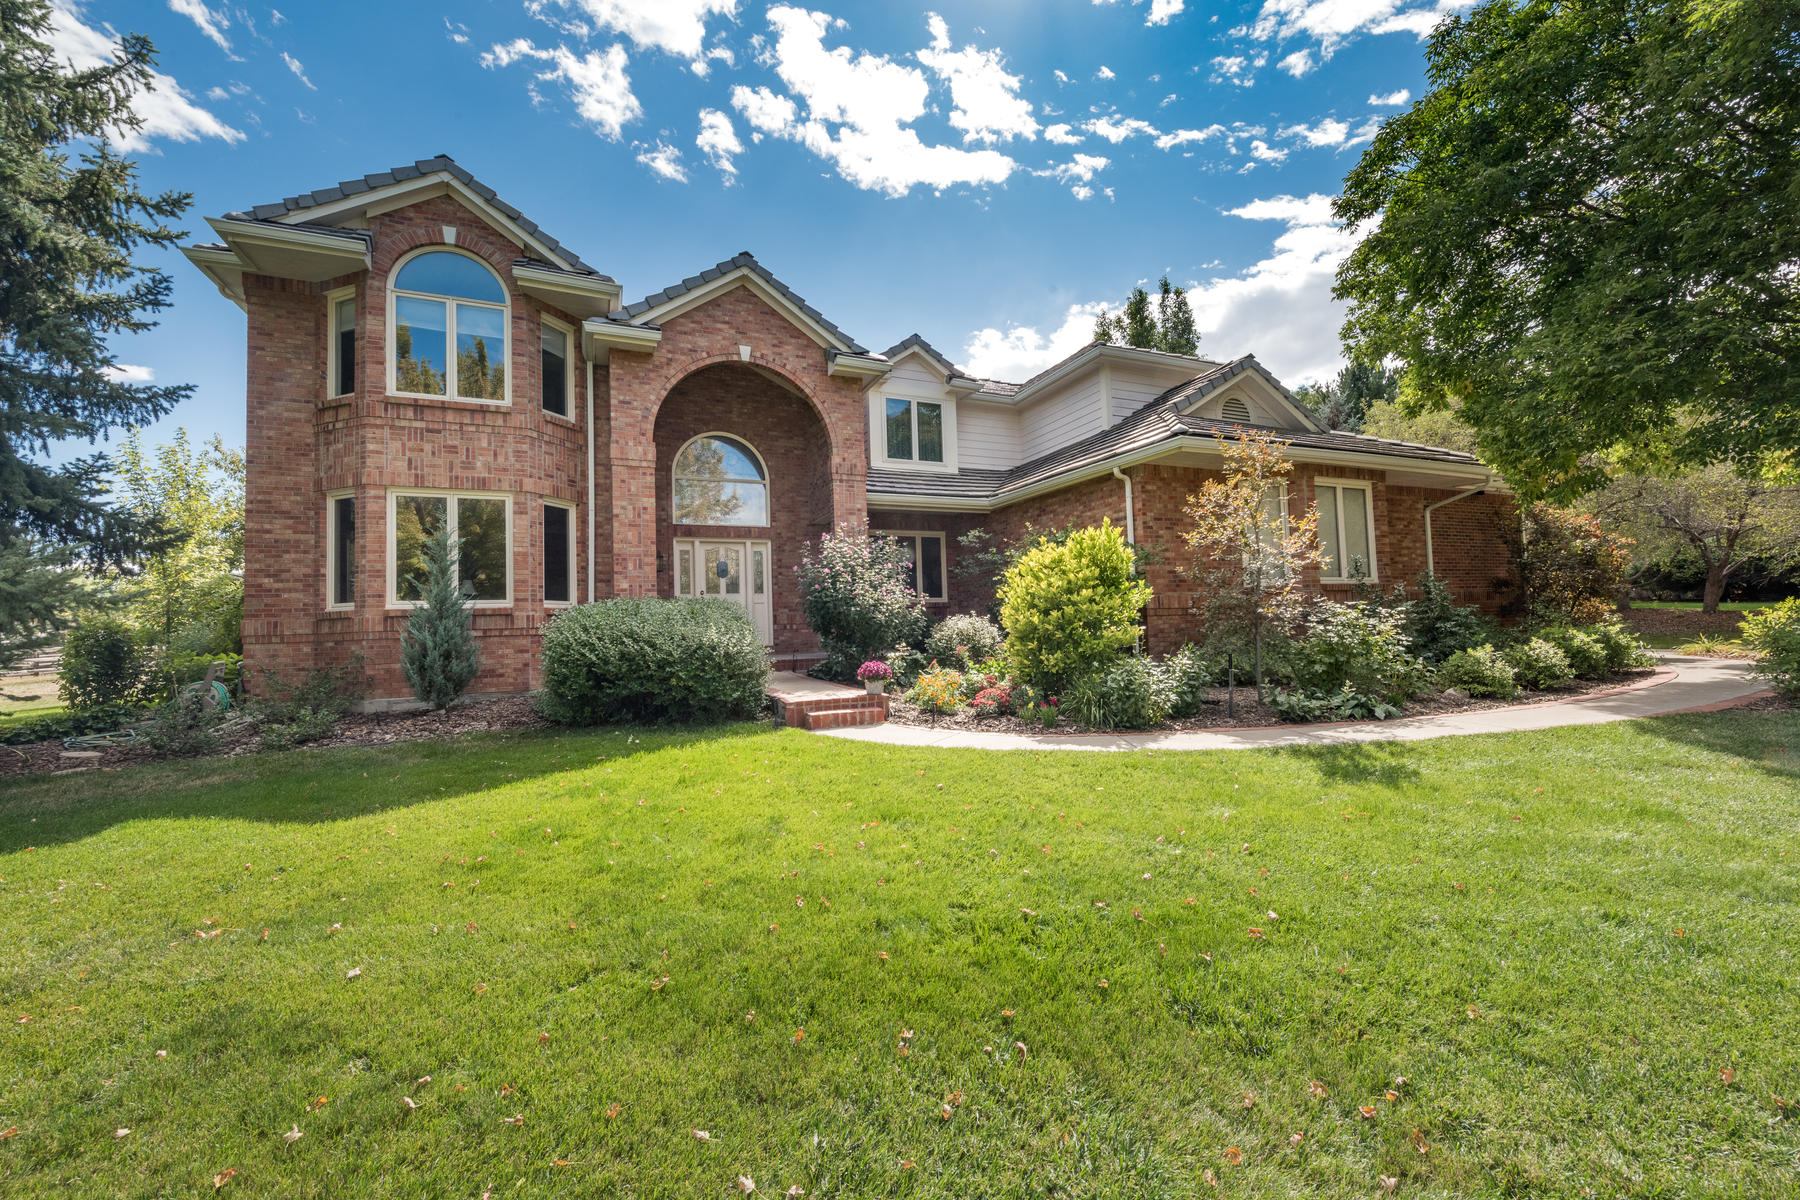 Single Family Homes for Active at Custom 2-story home nestled on a serene park-like lot in Greenwood Village 5430 S Cottonwood Ct Greenwood Village, Colorado 80121 United States